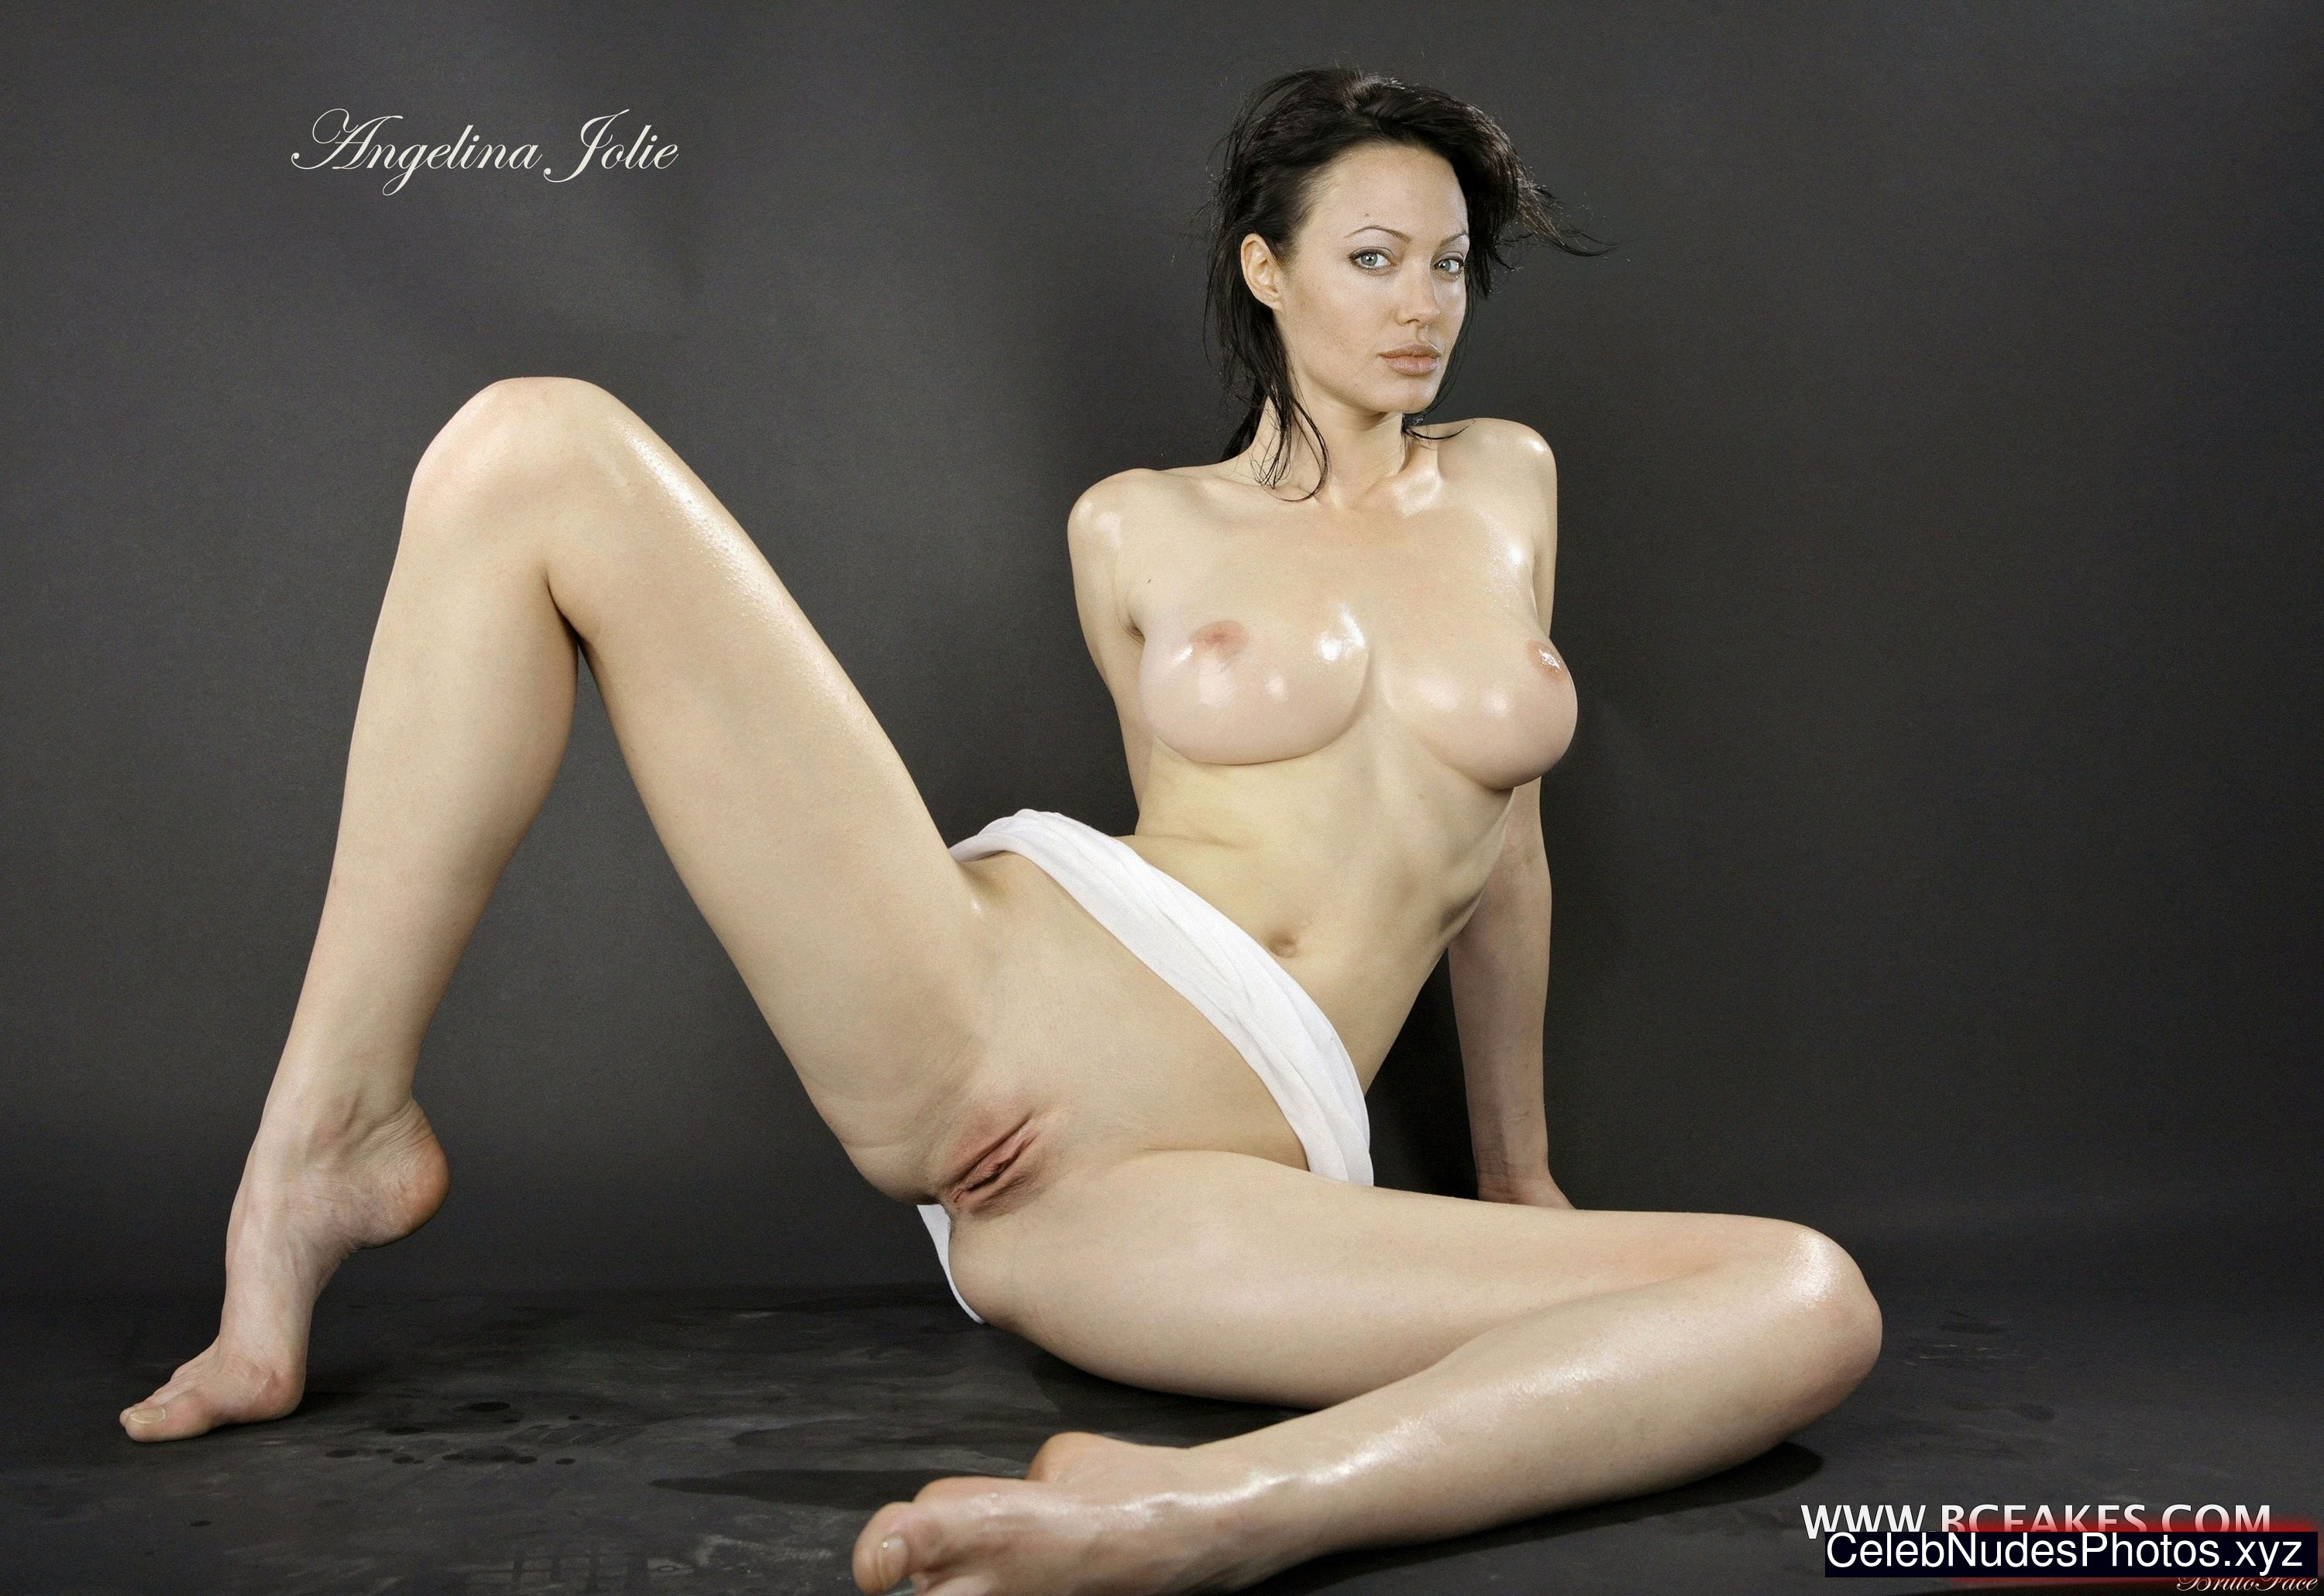 Can angelina naked nude spanked have